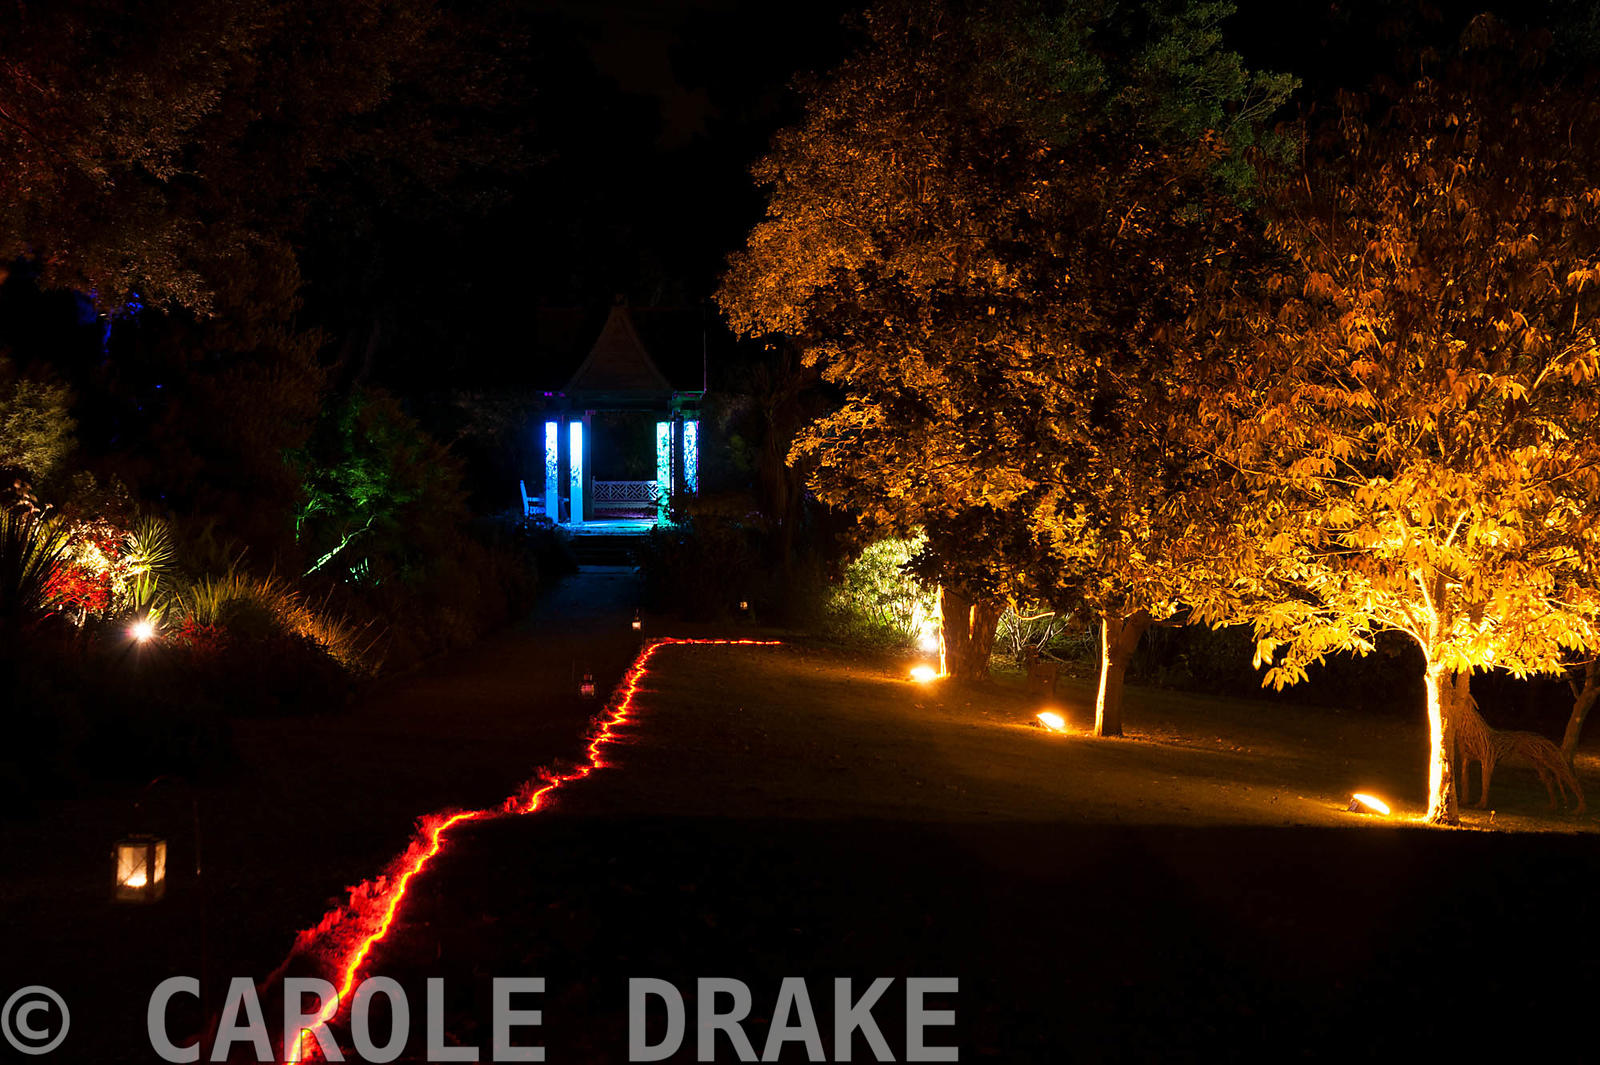 A rope of red light guides visitors through the illuminated garden with the Pavilion beyond